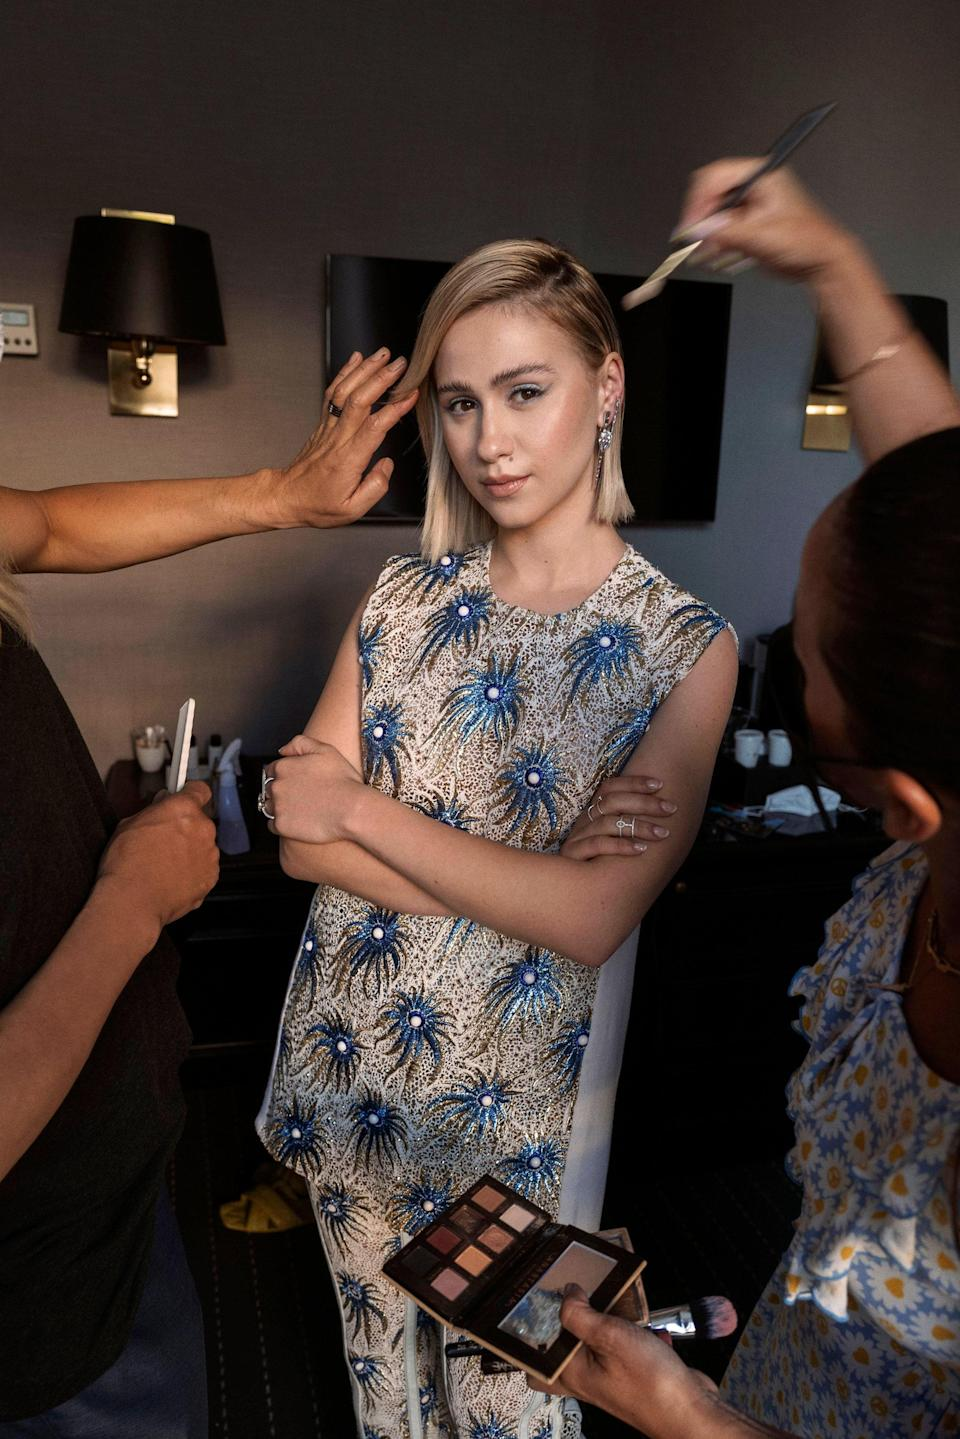 Bakalova gets ready for the red carpet for Titane in her Louis Vuitton fall 2021 look.